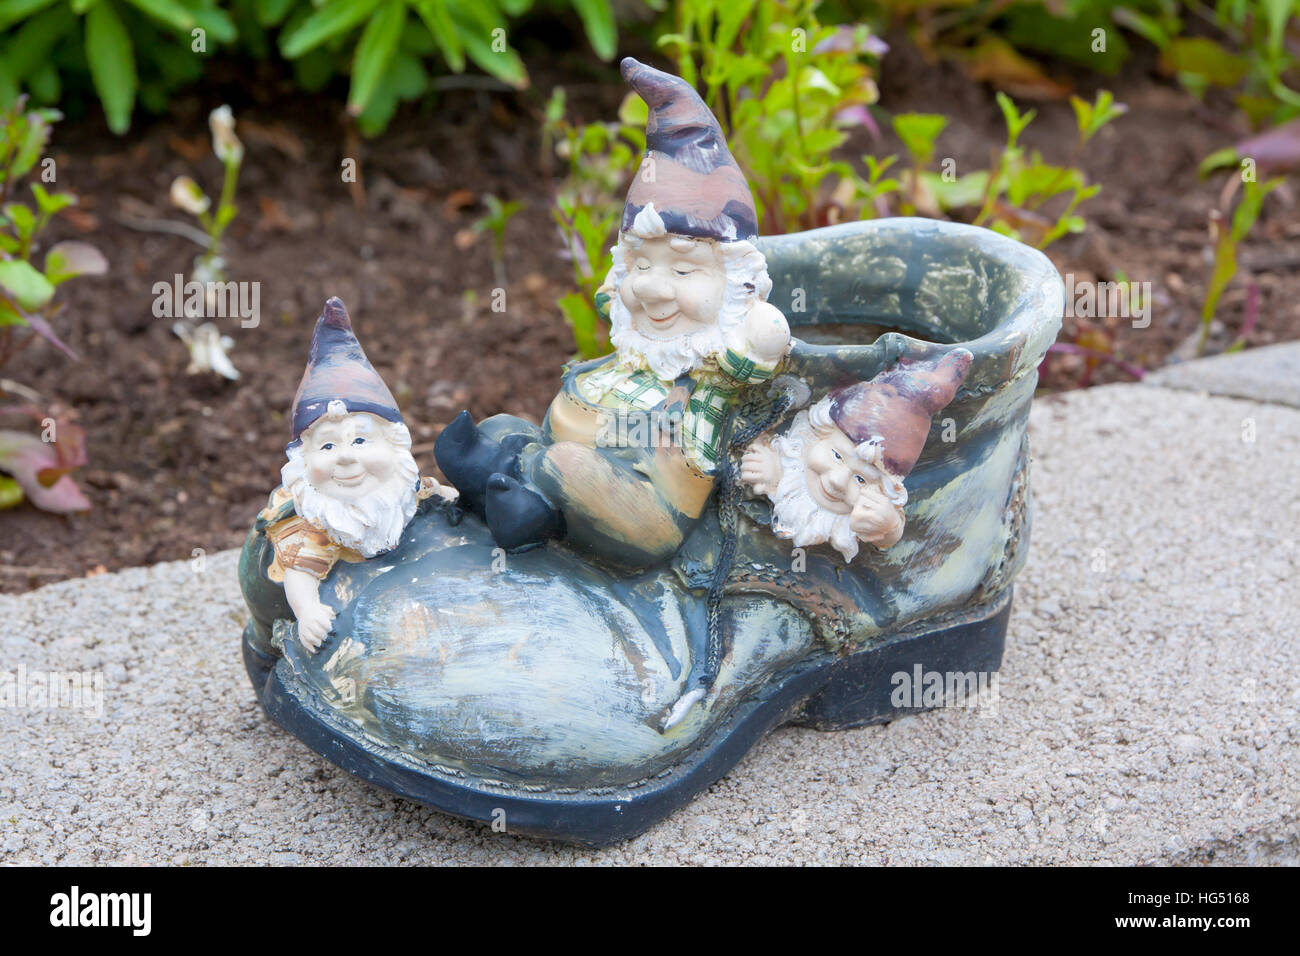 funny garden gnomes sitting on the shoe stock image - Funny Garden Gnomes